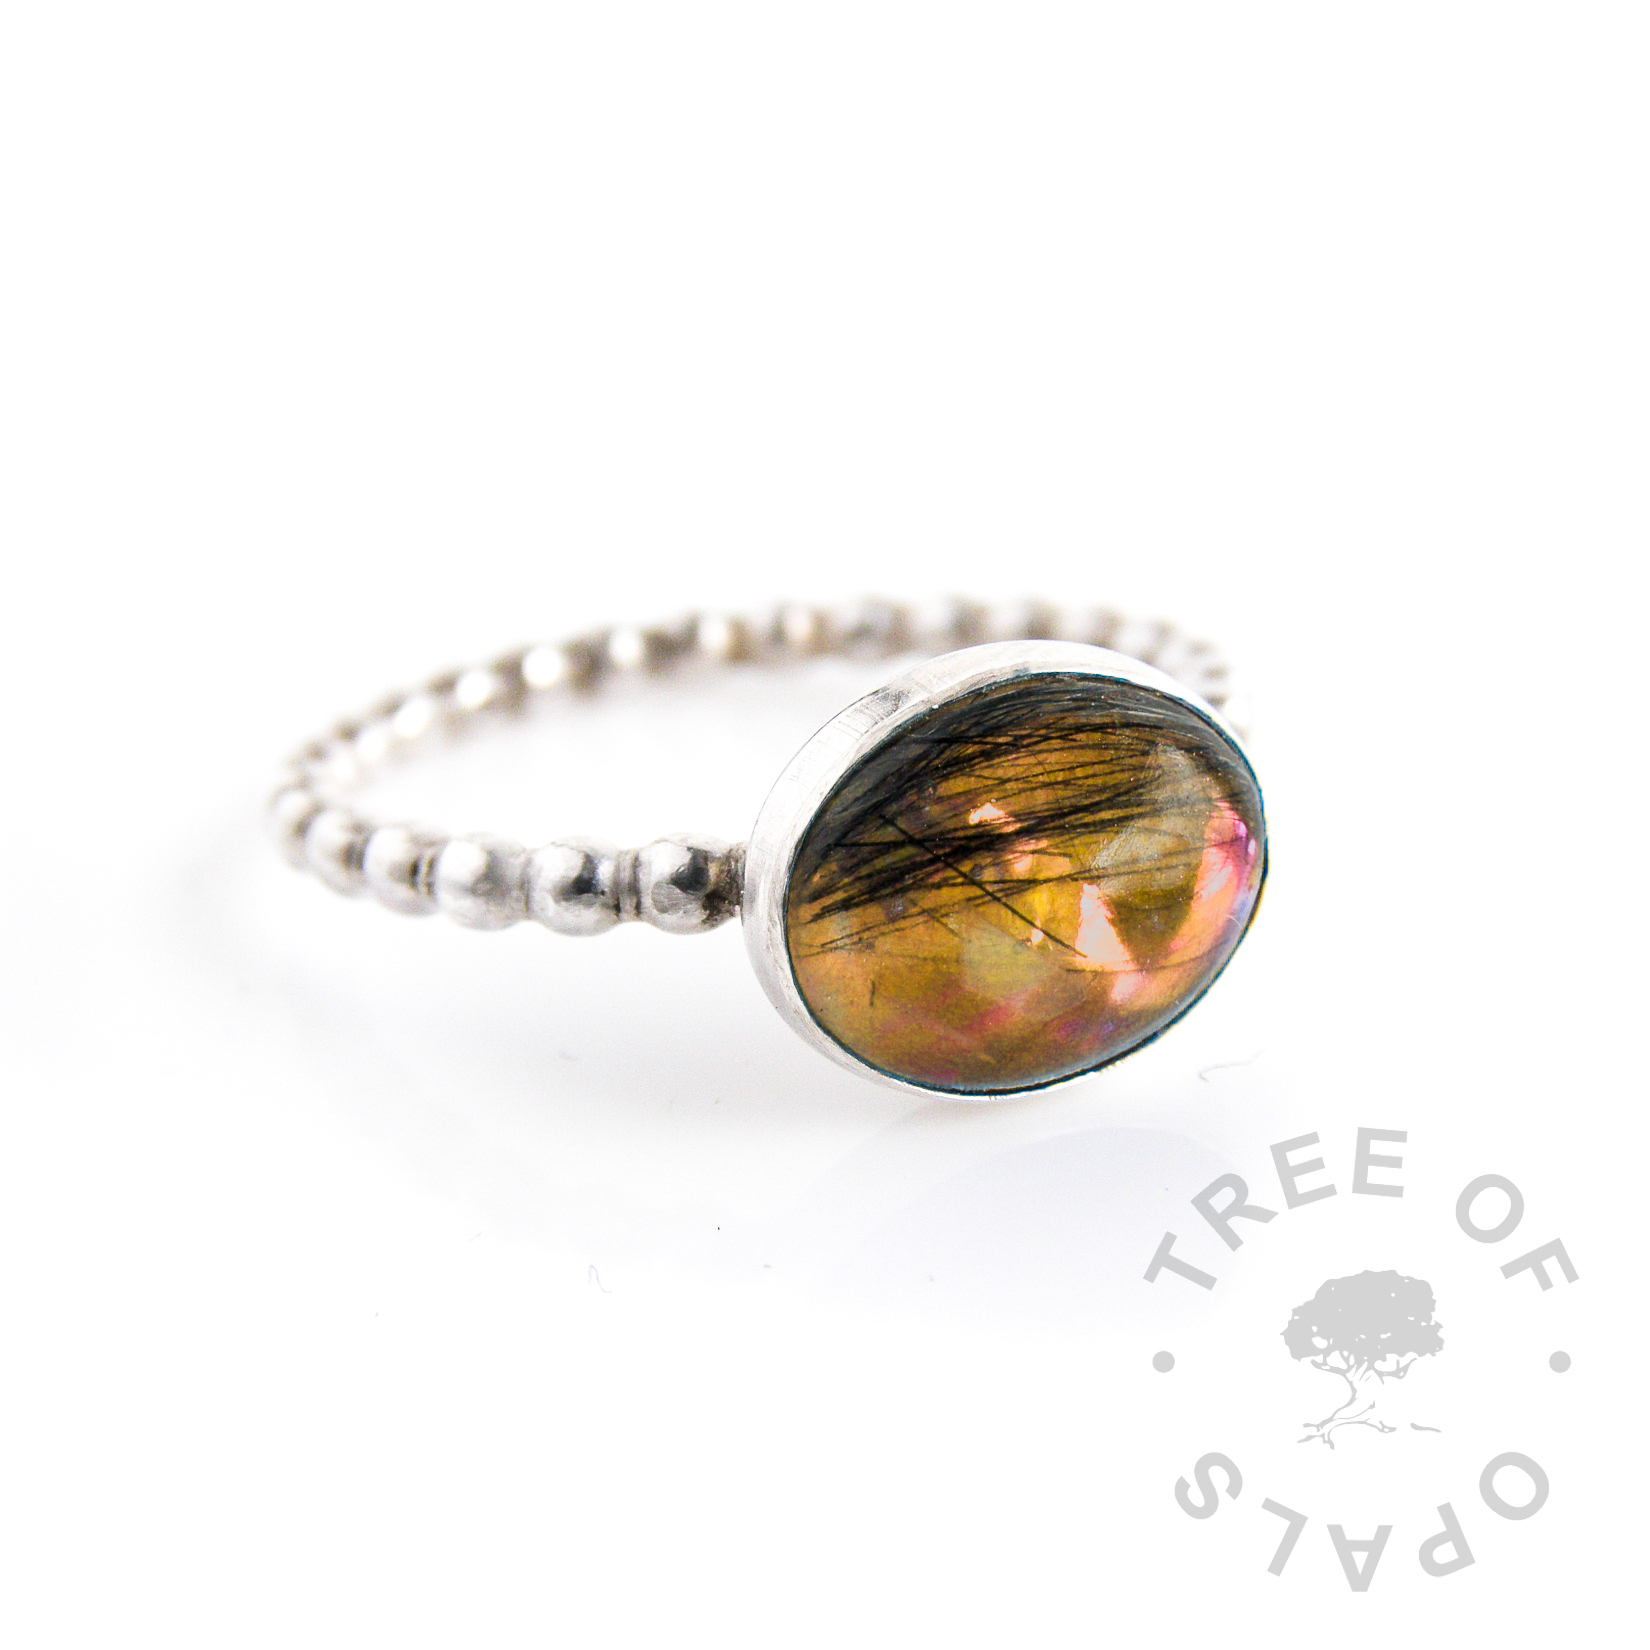 lock of hair ring with orange opalescent flakes background on a bubble wire solid silver band and 10x8mm oval cabochon